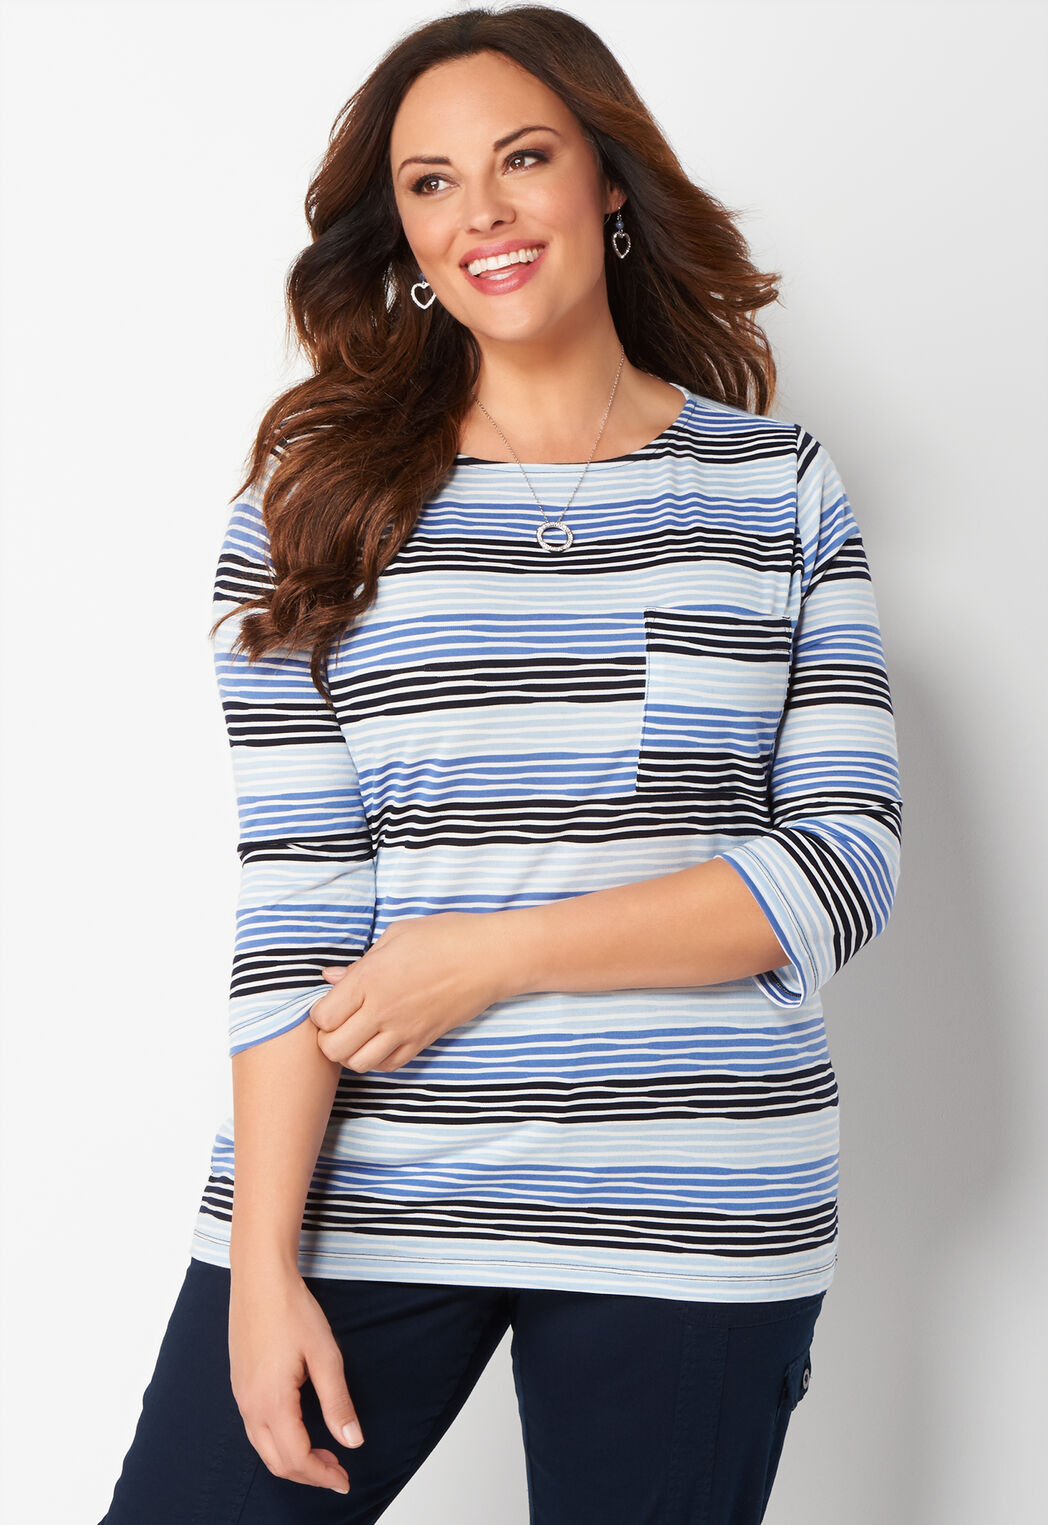 women's wavy knit striped plus size top from christopher & banks